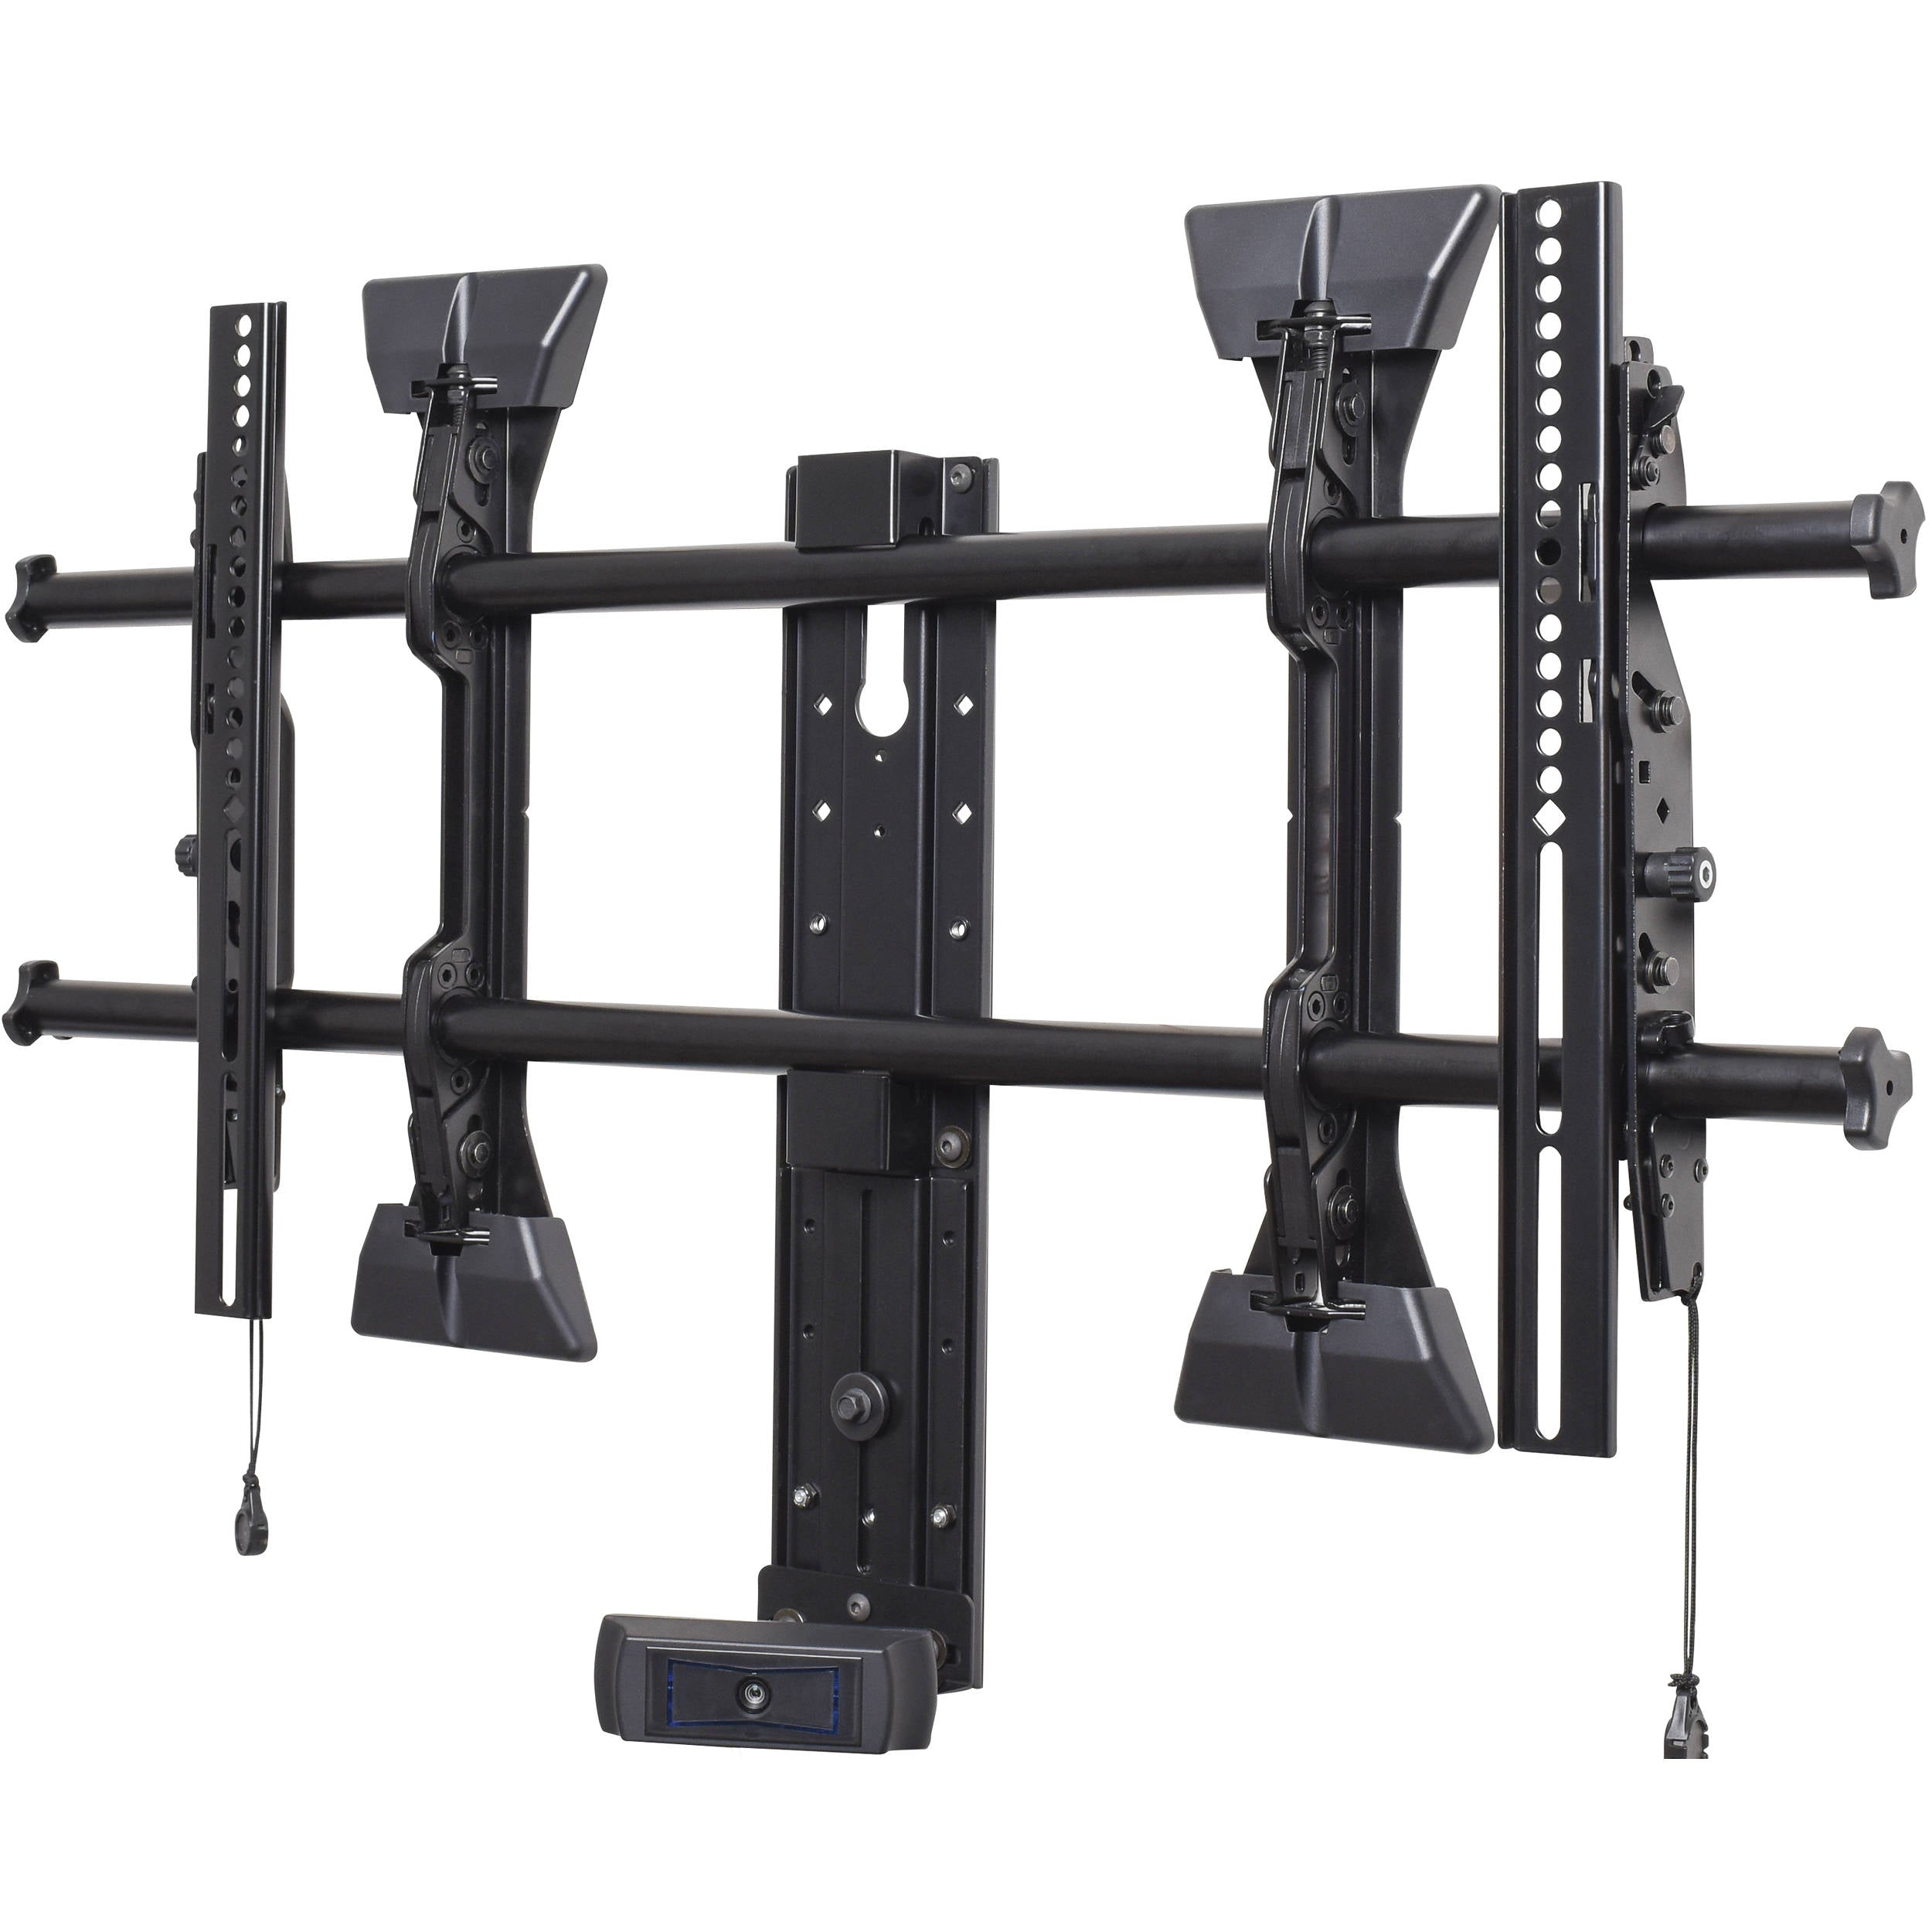 "Chief Fusion Above/Below ViewShare Kit for Extra-Large Displays (16.1 to 29.1"" Height)"